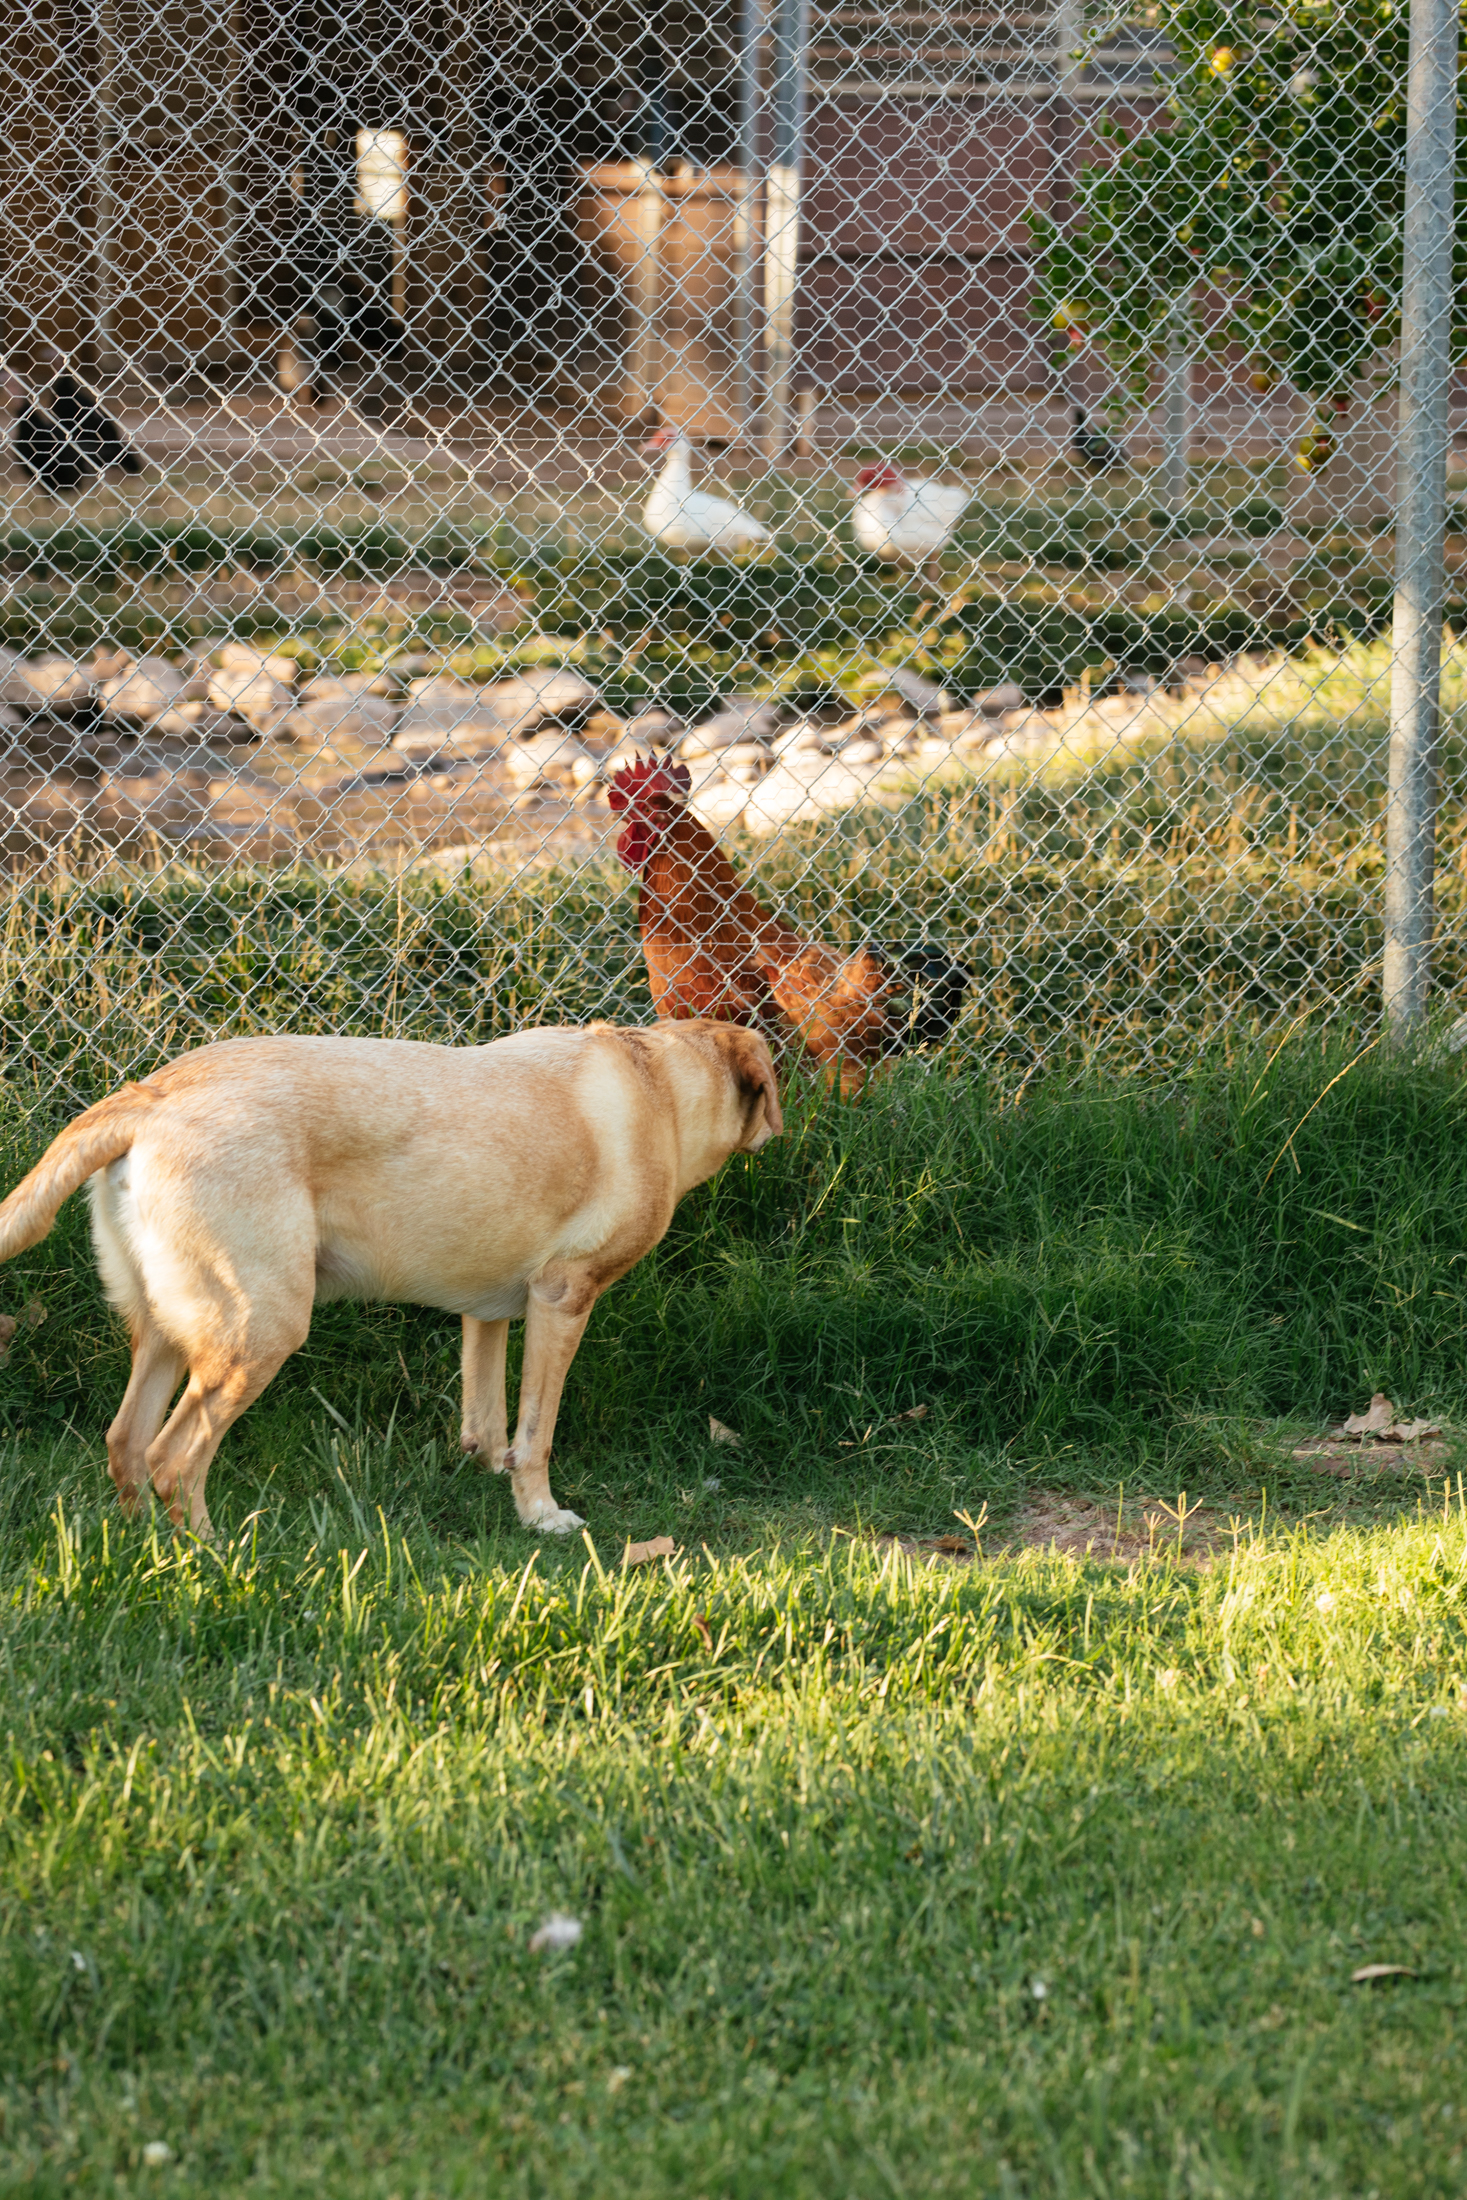 Bruce trying to befriend Mr Rooster